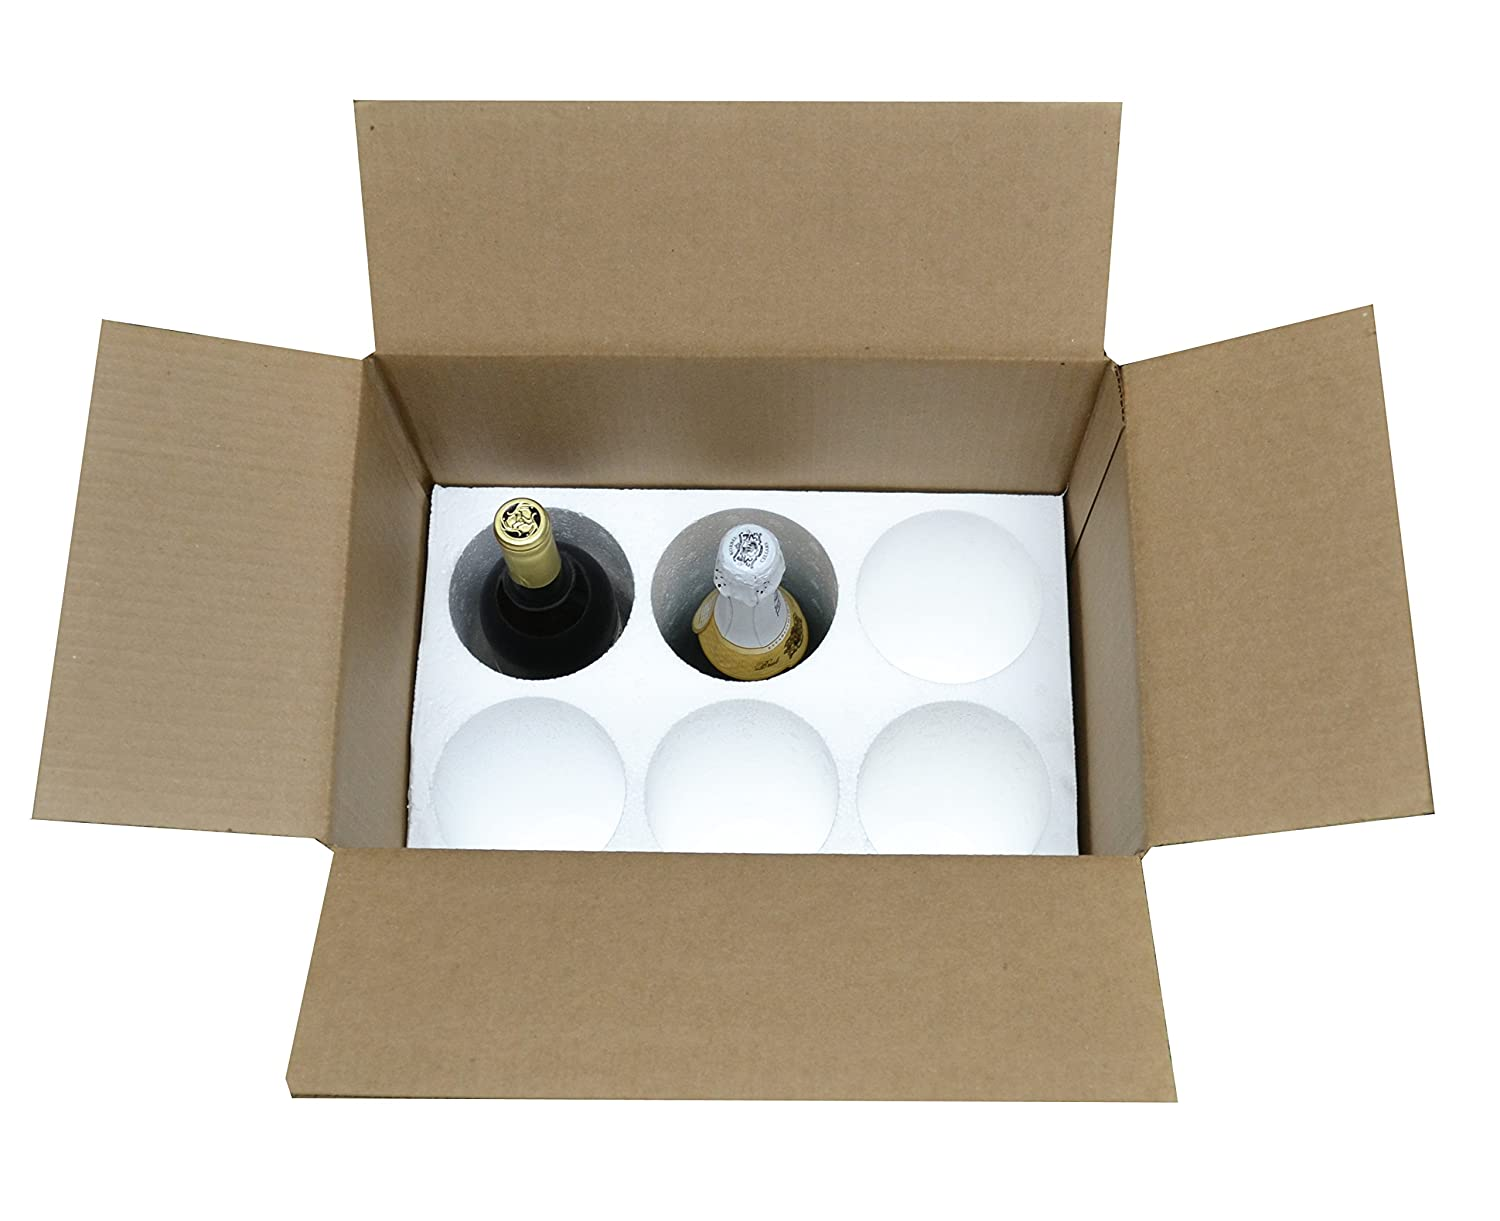 Amazon.com: COOL-06 hielera para 6 botellas, para enví ...